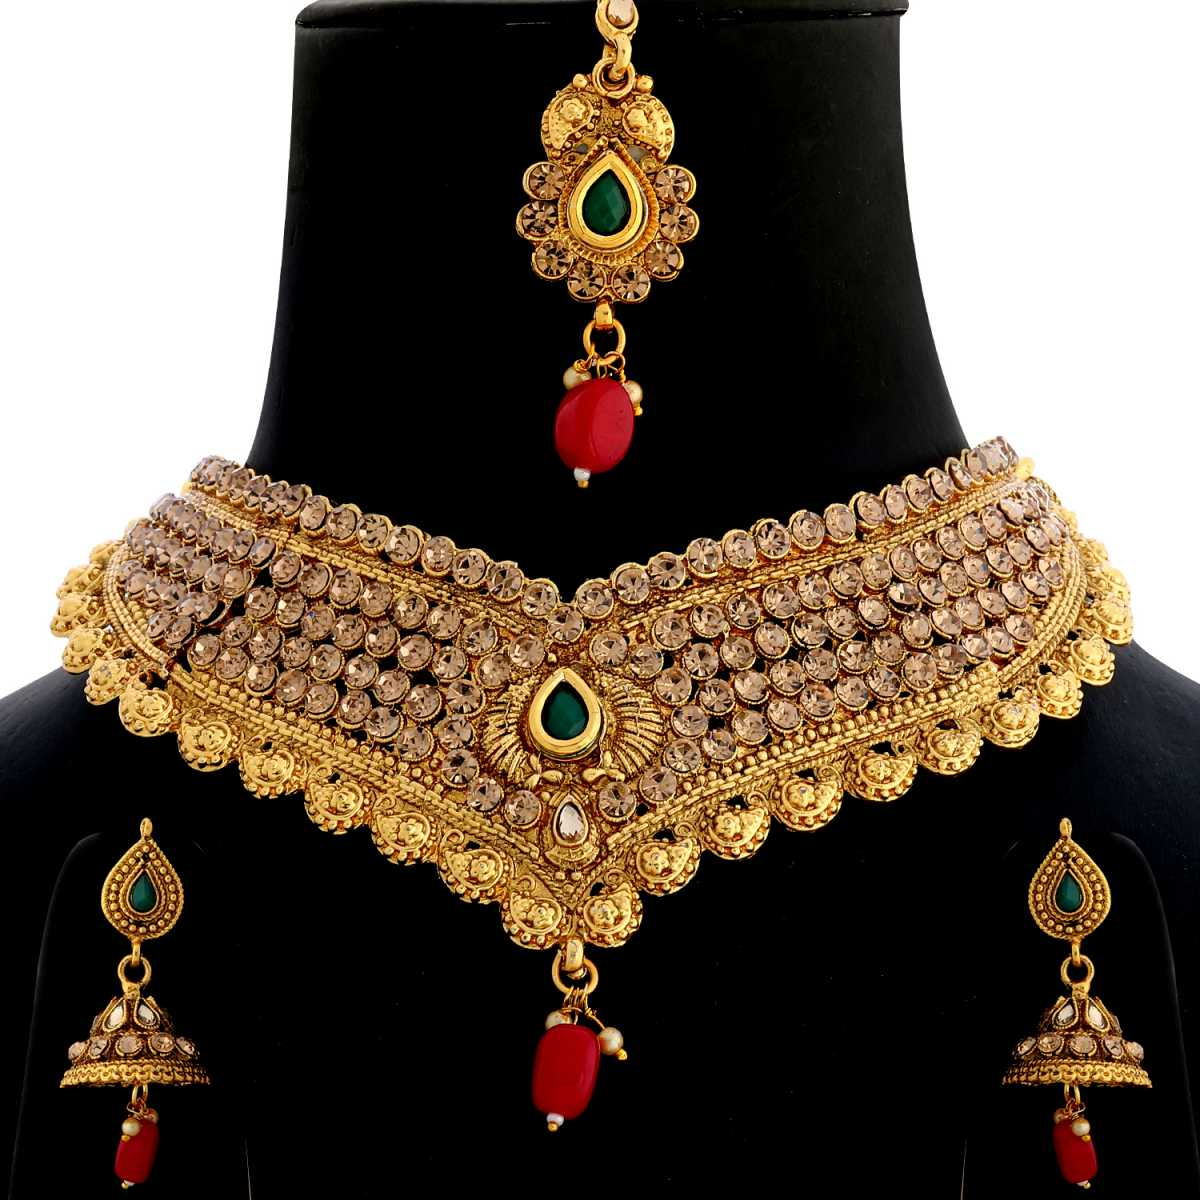 Silver Shine Gold Plated Choker  Traditional Unique Mesmerising Kundan stone studded Maharaja Style design with Bead Drop  Designer Bridal Wedding Necklace jewellery set for Girls And Women